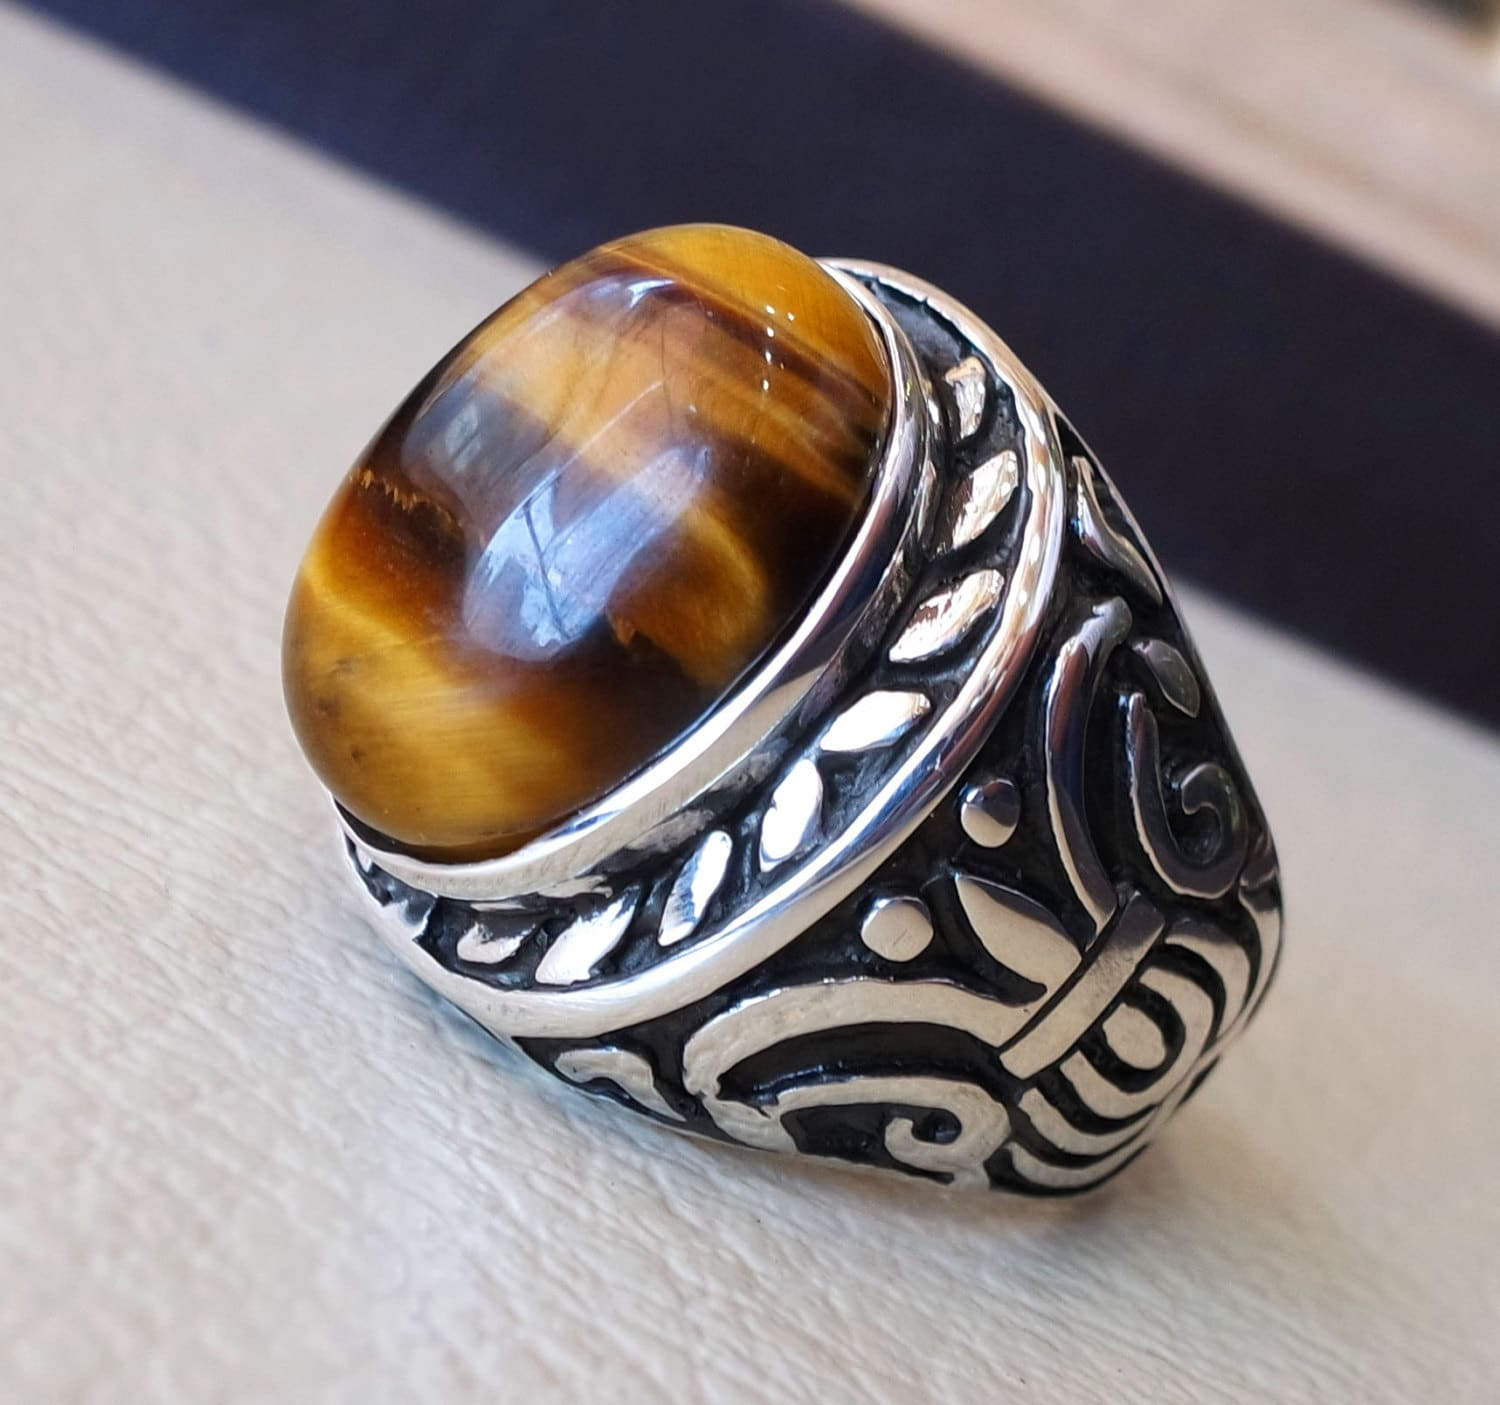 Big Men Ring Tiger Eye Cat Eye Natural Cabochon Semi Precious. Mens Purple Wedding Engagement Rings. Cute Hand Wedding Rings. Blush Wedding Rings. Gemini Rings. Gent Rings. Spiritual Wedding Wedding Rings. Wedding Disney Engagement Rings. Heartbeat Rings